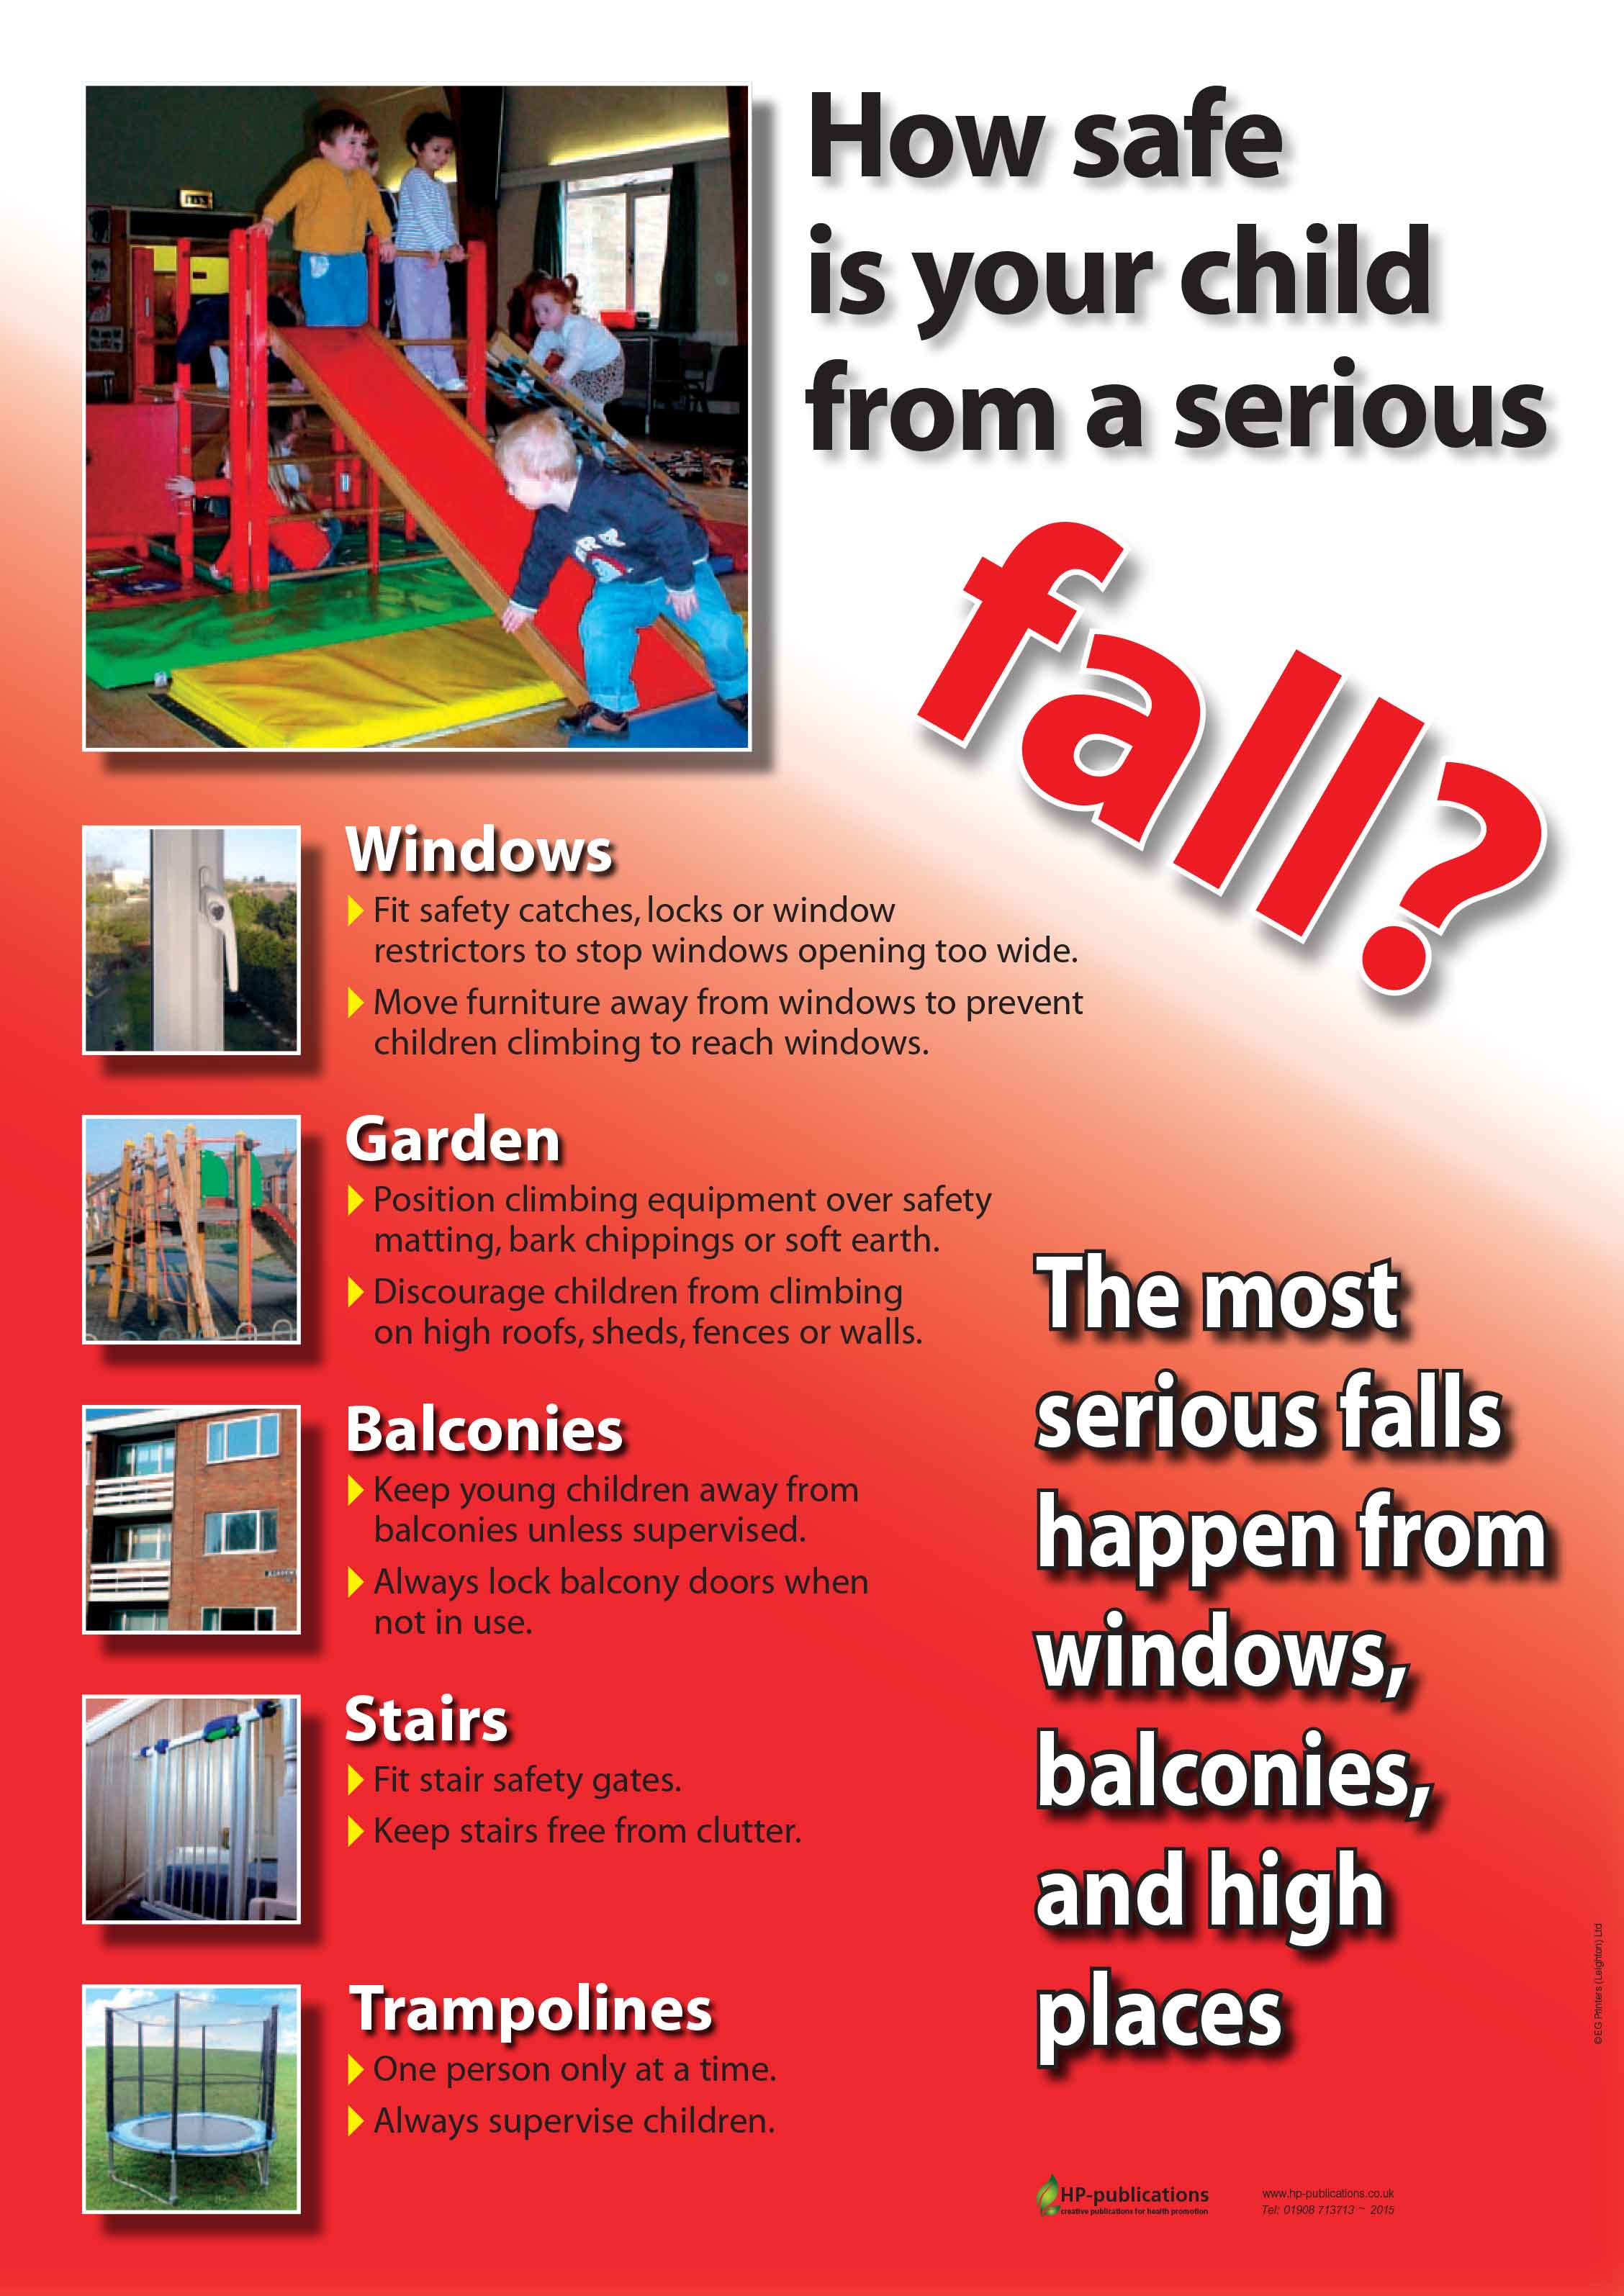 How safe is your child from a serious fall?